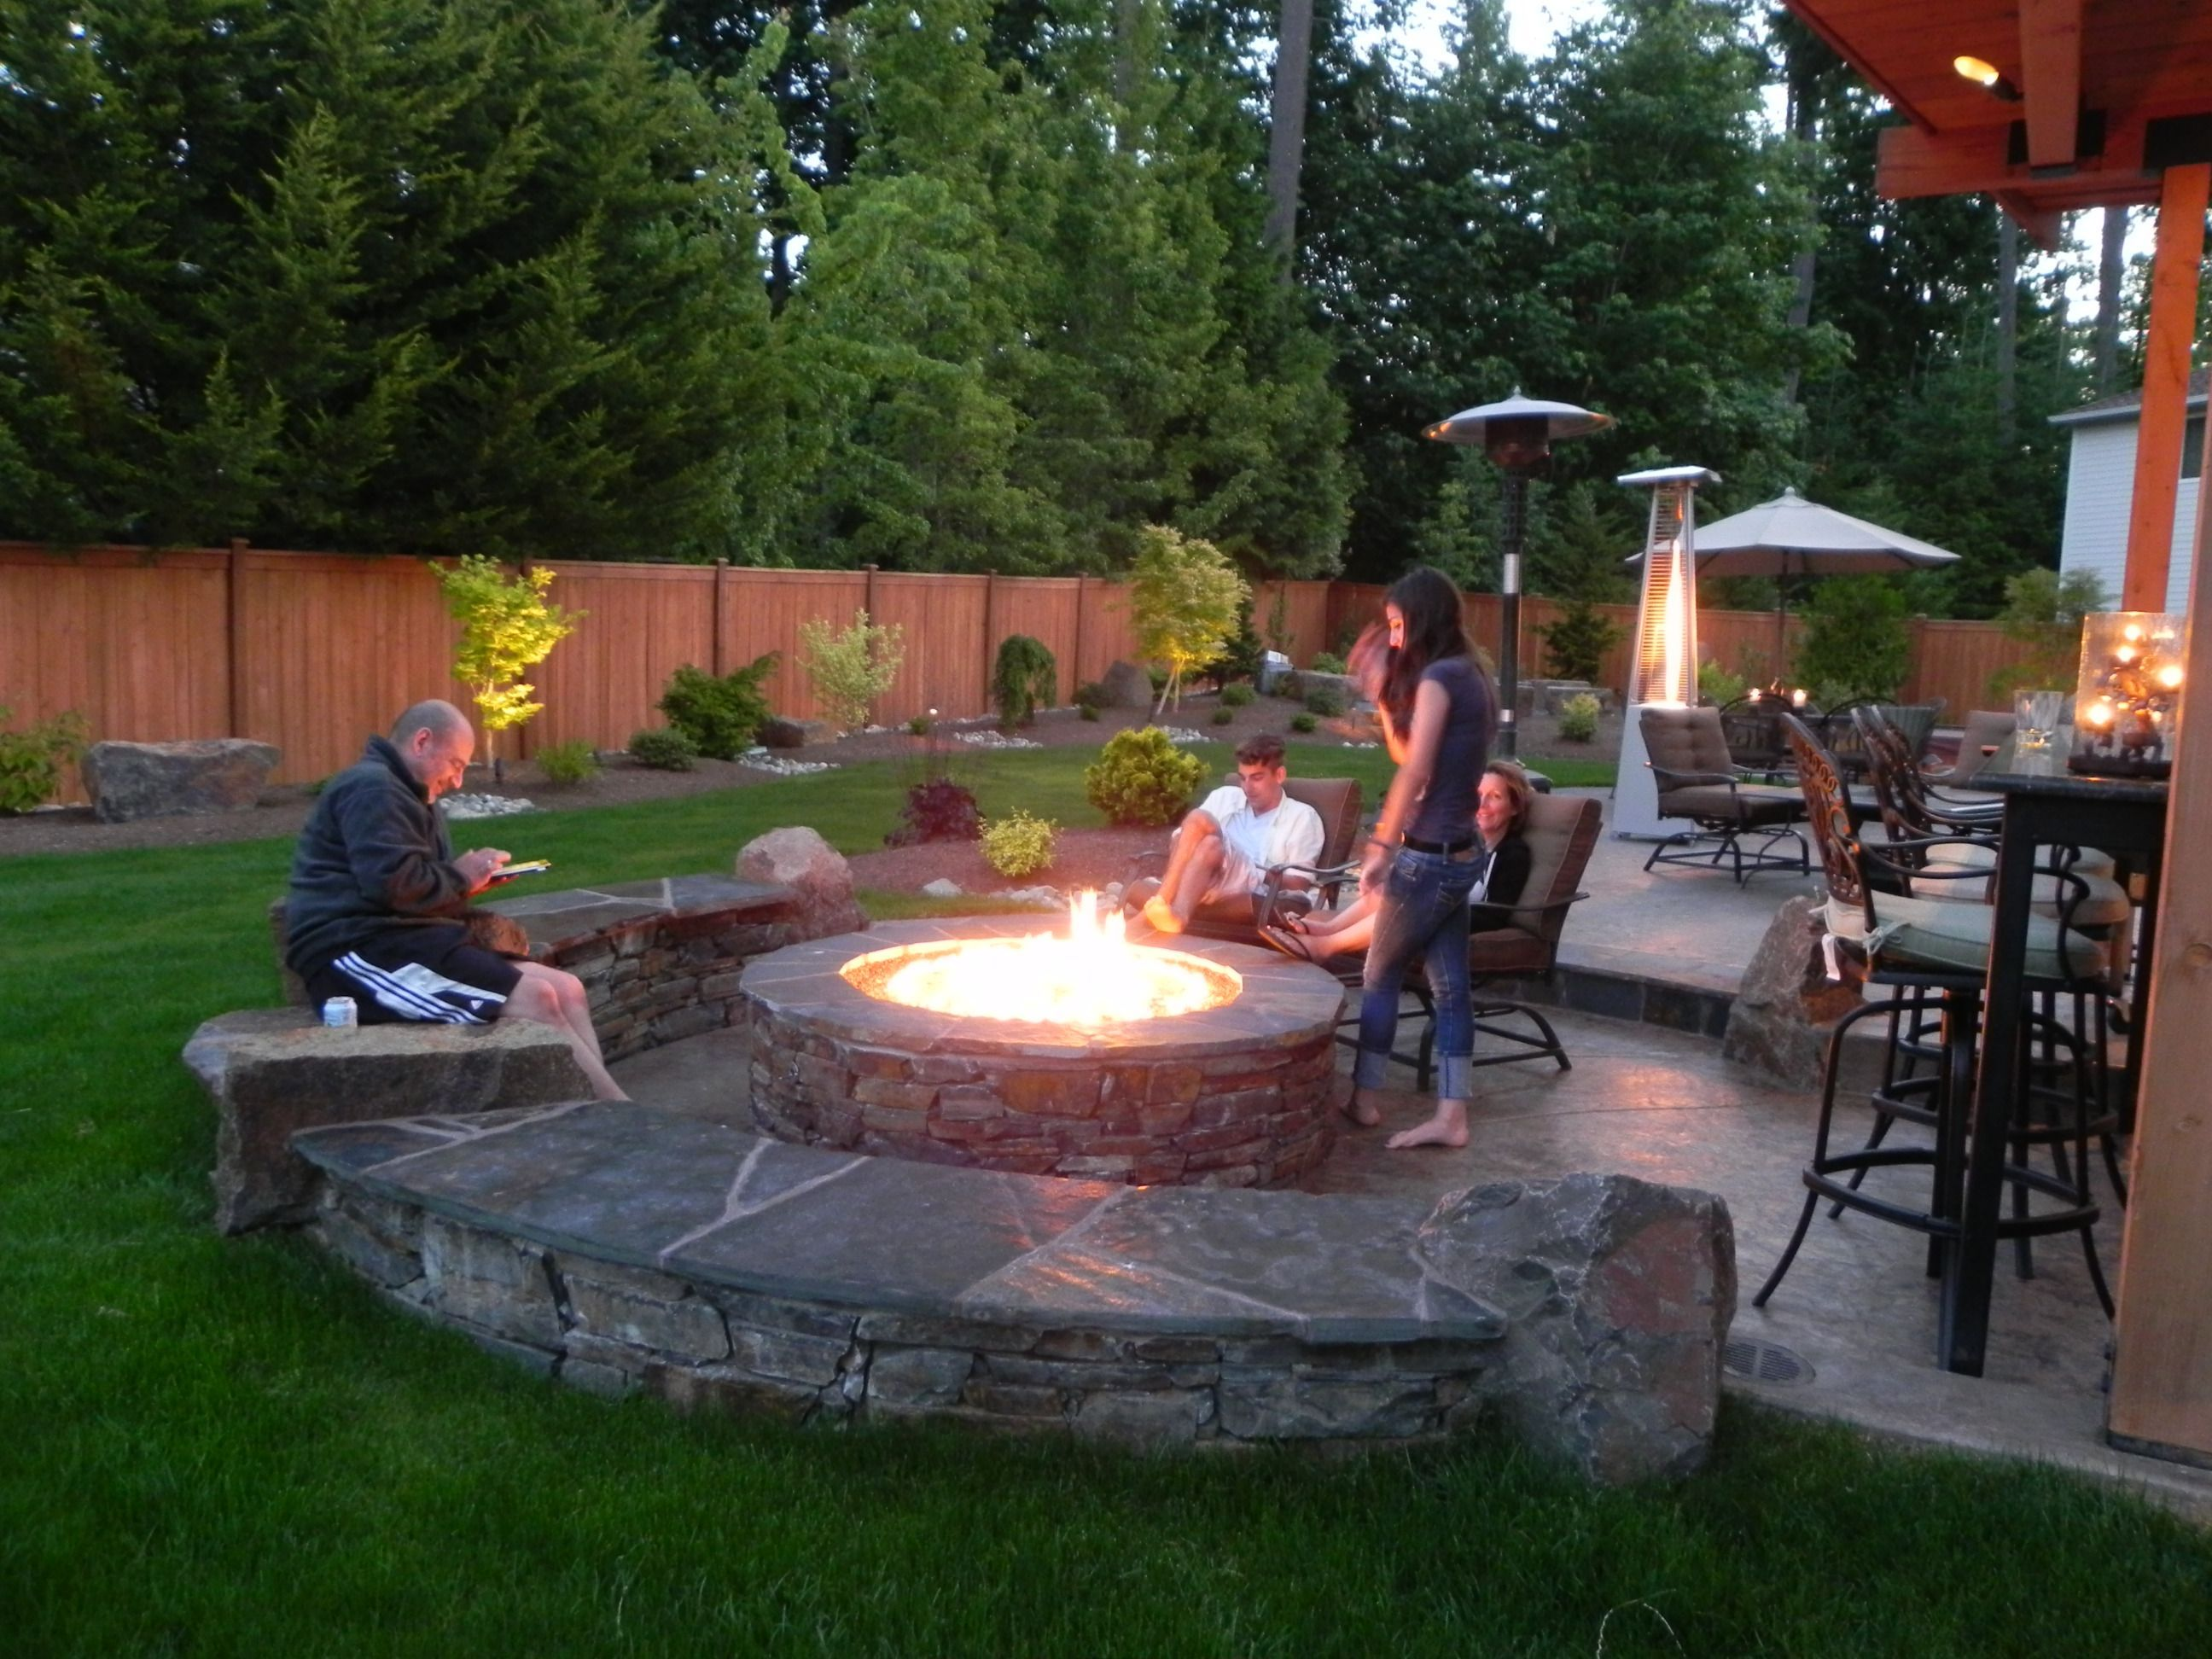 Backyard patio firepit ideas - Garden Design With Diy Backyard Landscaping And Wood Patio Ideas Fire Pit Homedreamworks Pw Courtyard Gardens